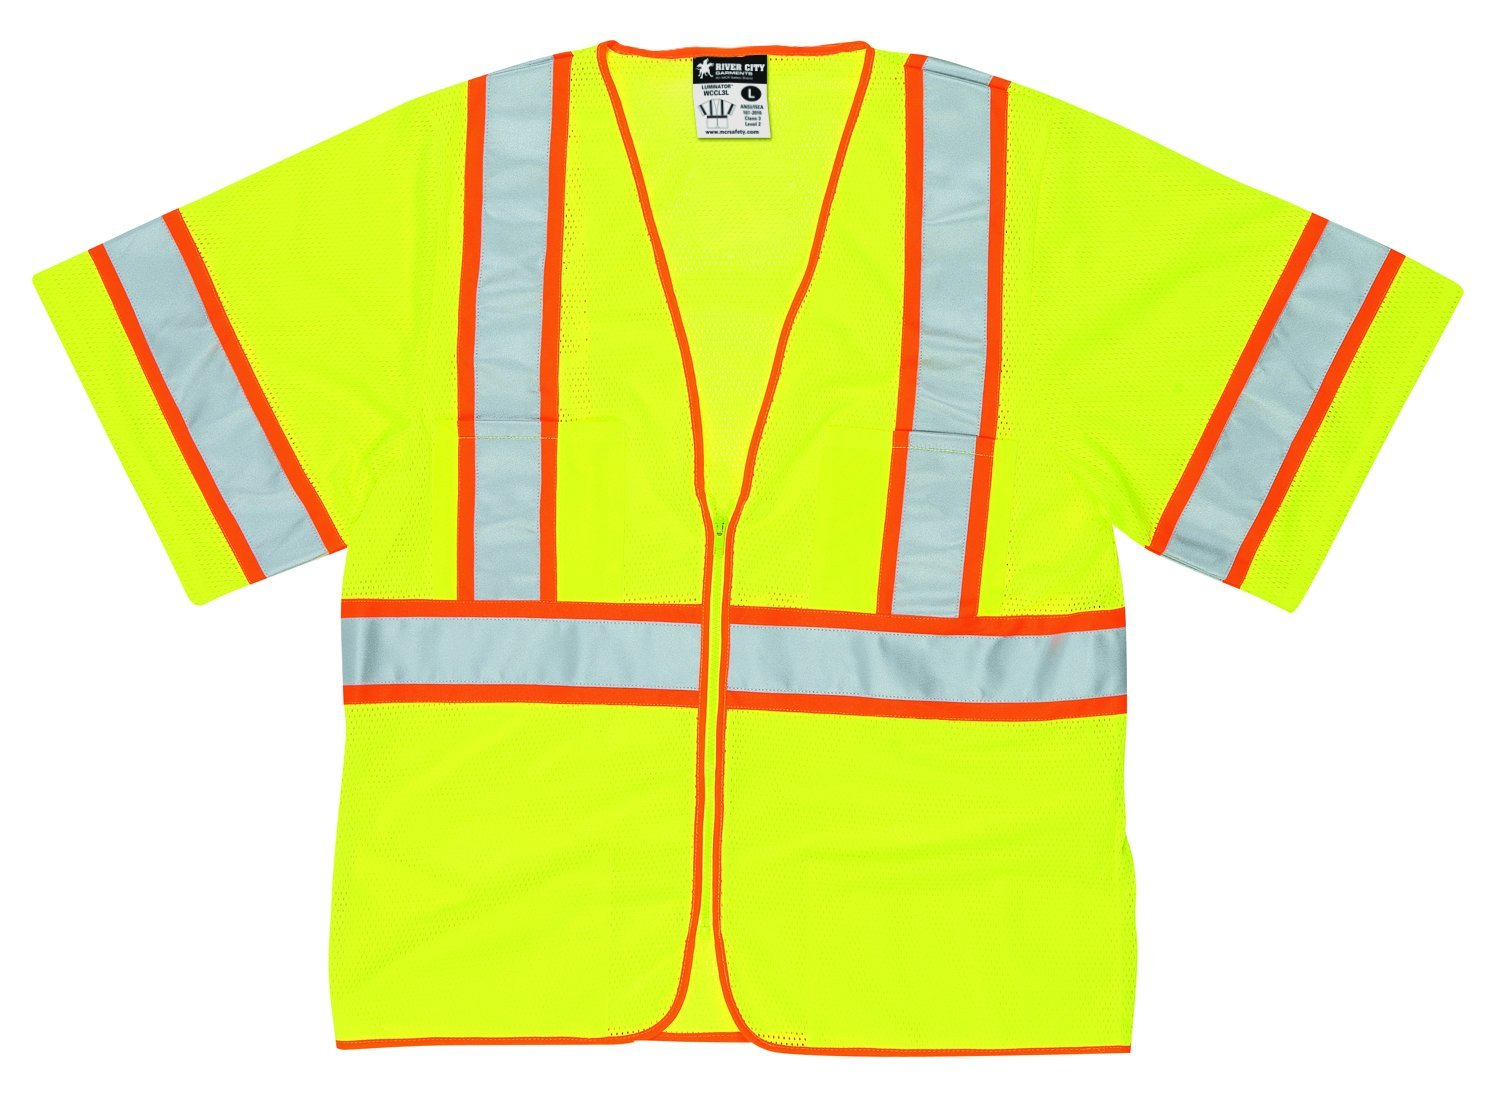 MCR Safety CL2MLM Class 2 Polyester Mesh Tear-Away Safety Vest with 3M Scotchlite 2-Inch Silver Stripe, Fluorescent Lime, Medium